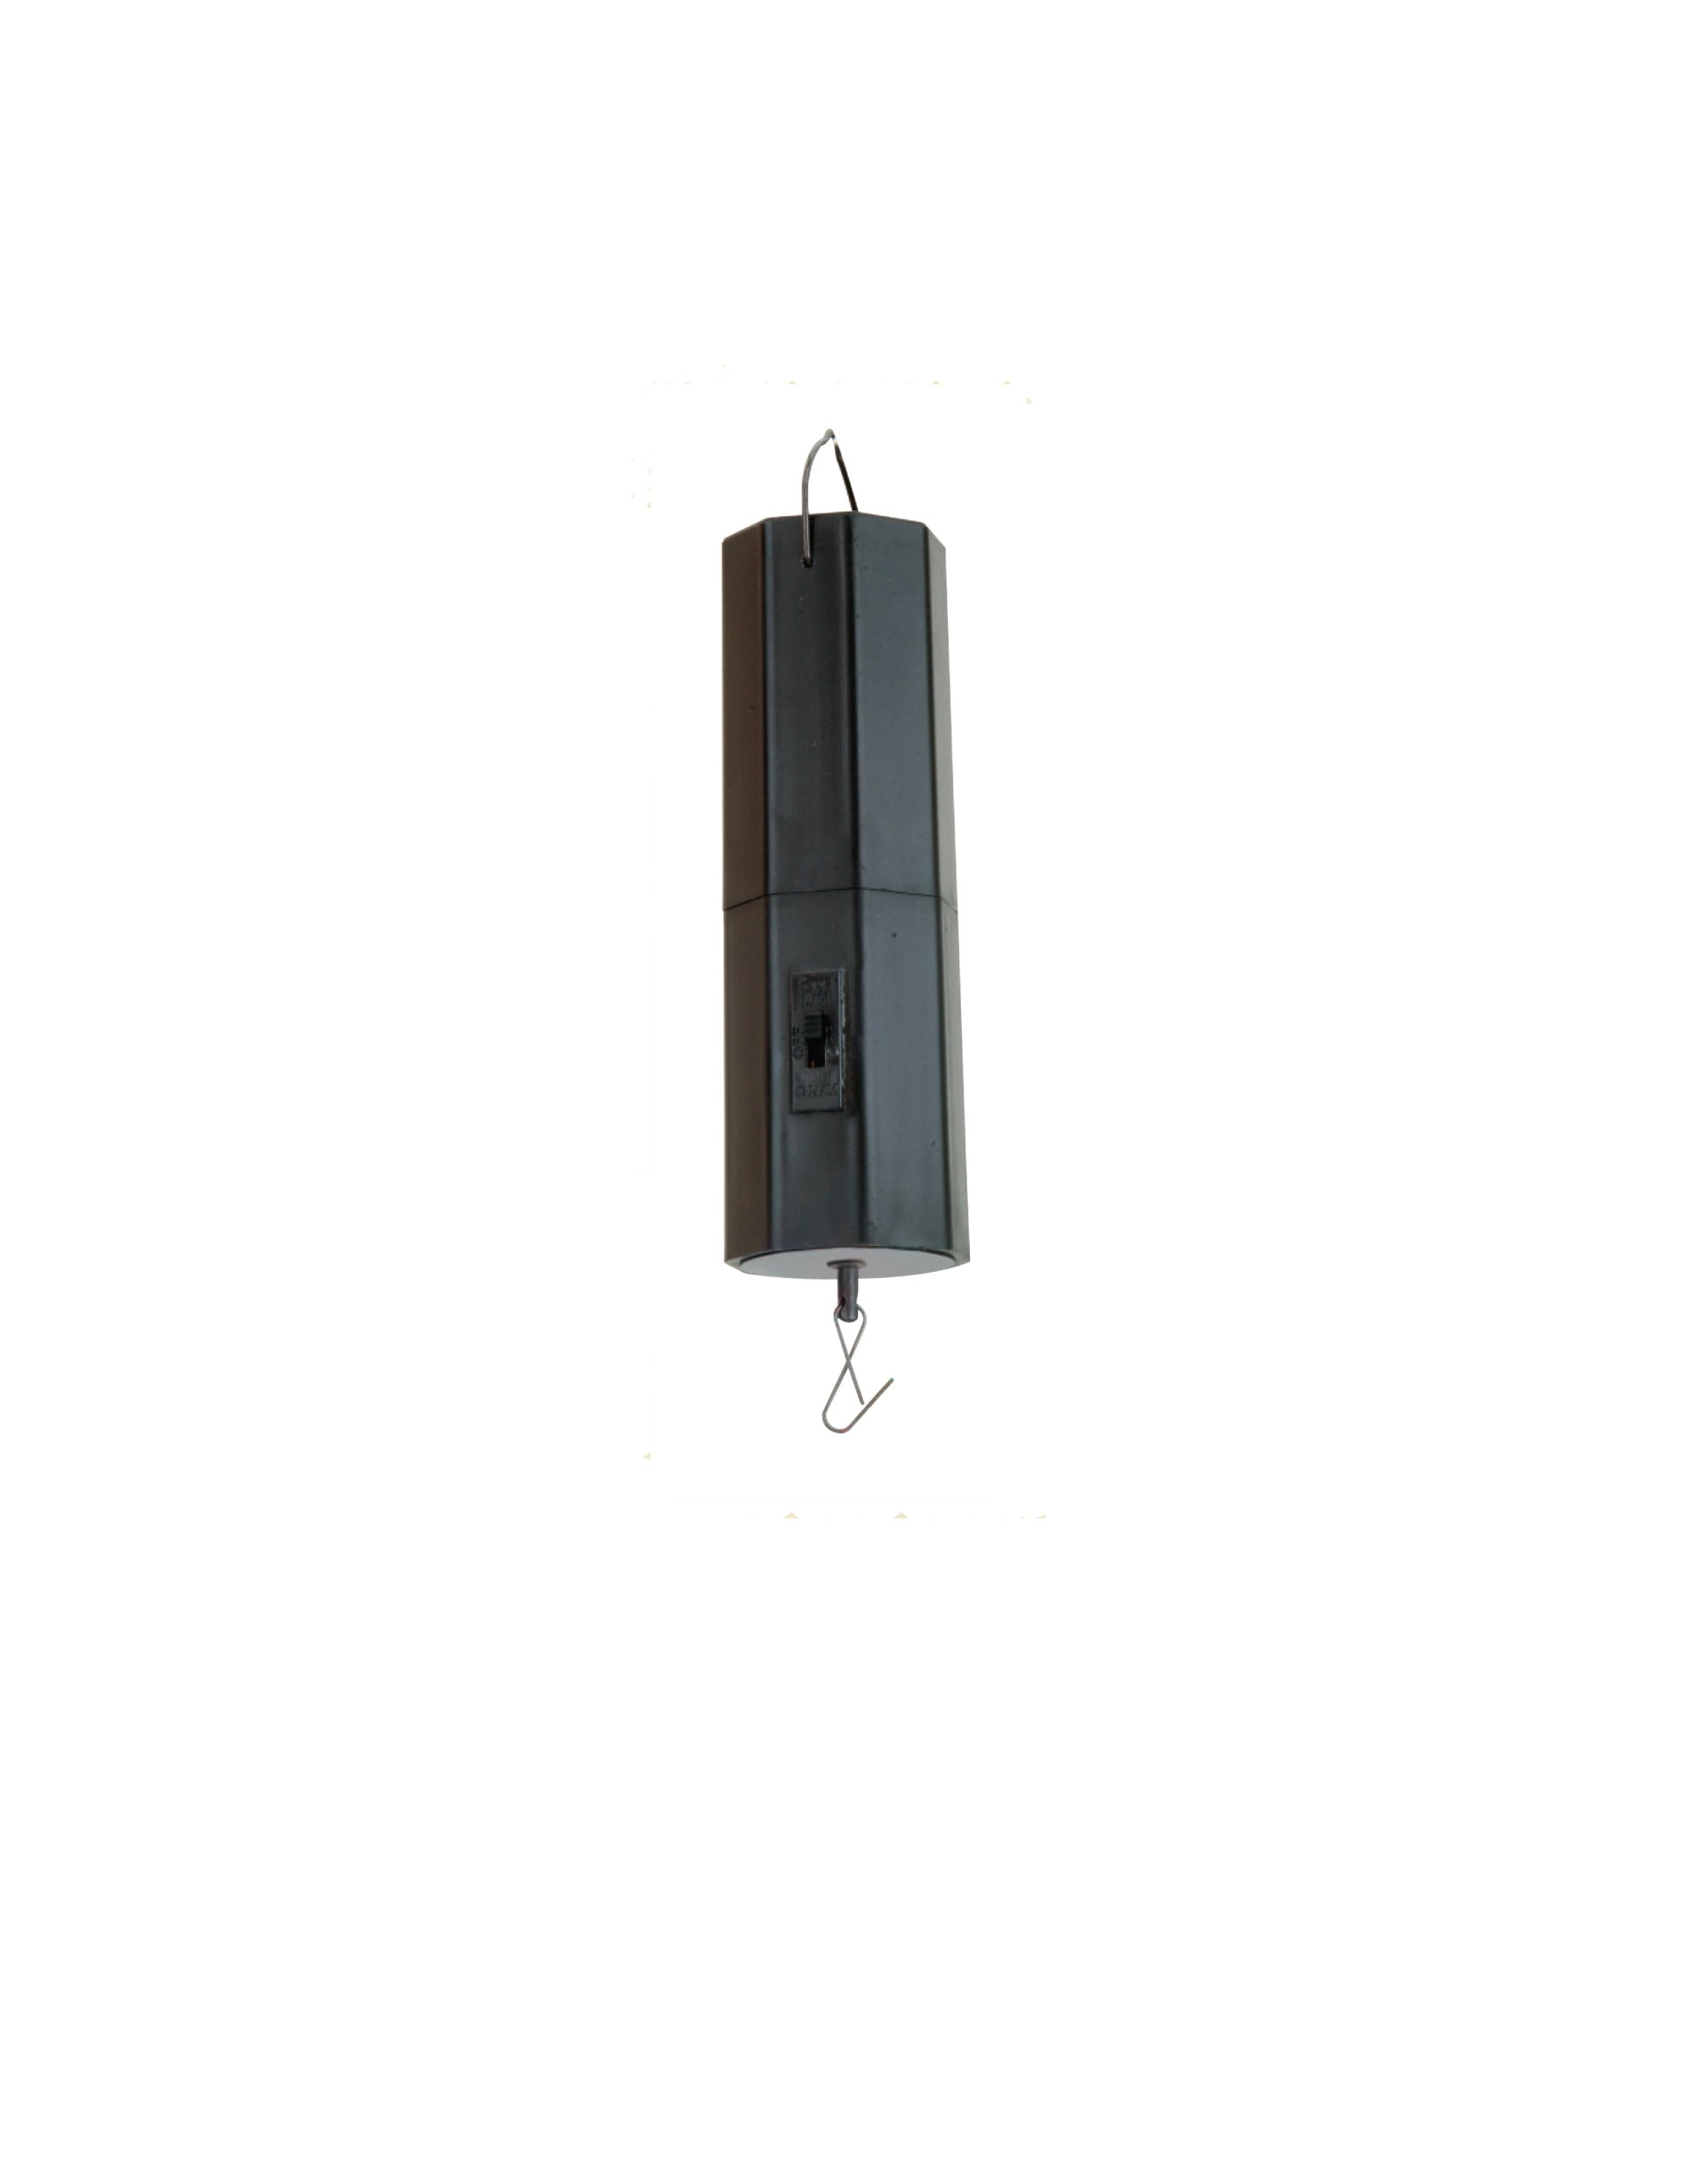 Red Carpet Studios Black Rotating Motor for Hanging Décor, Wind Chimes and More